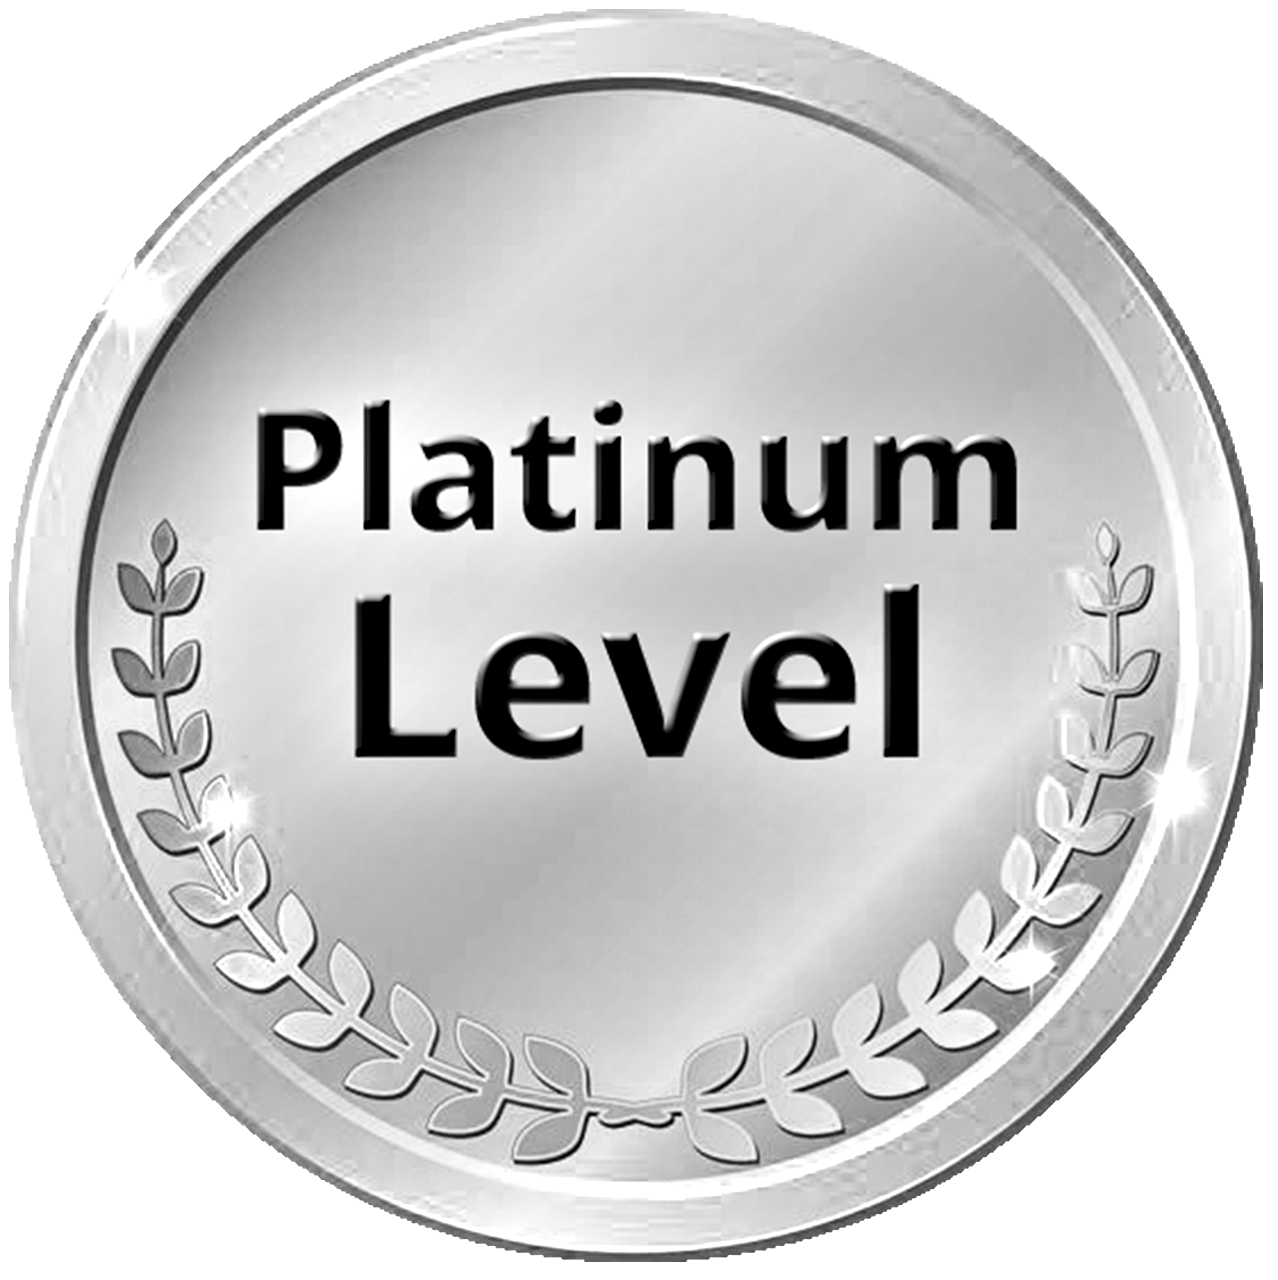 Platinum Level - Asperger Works Inc.